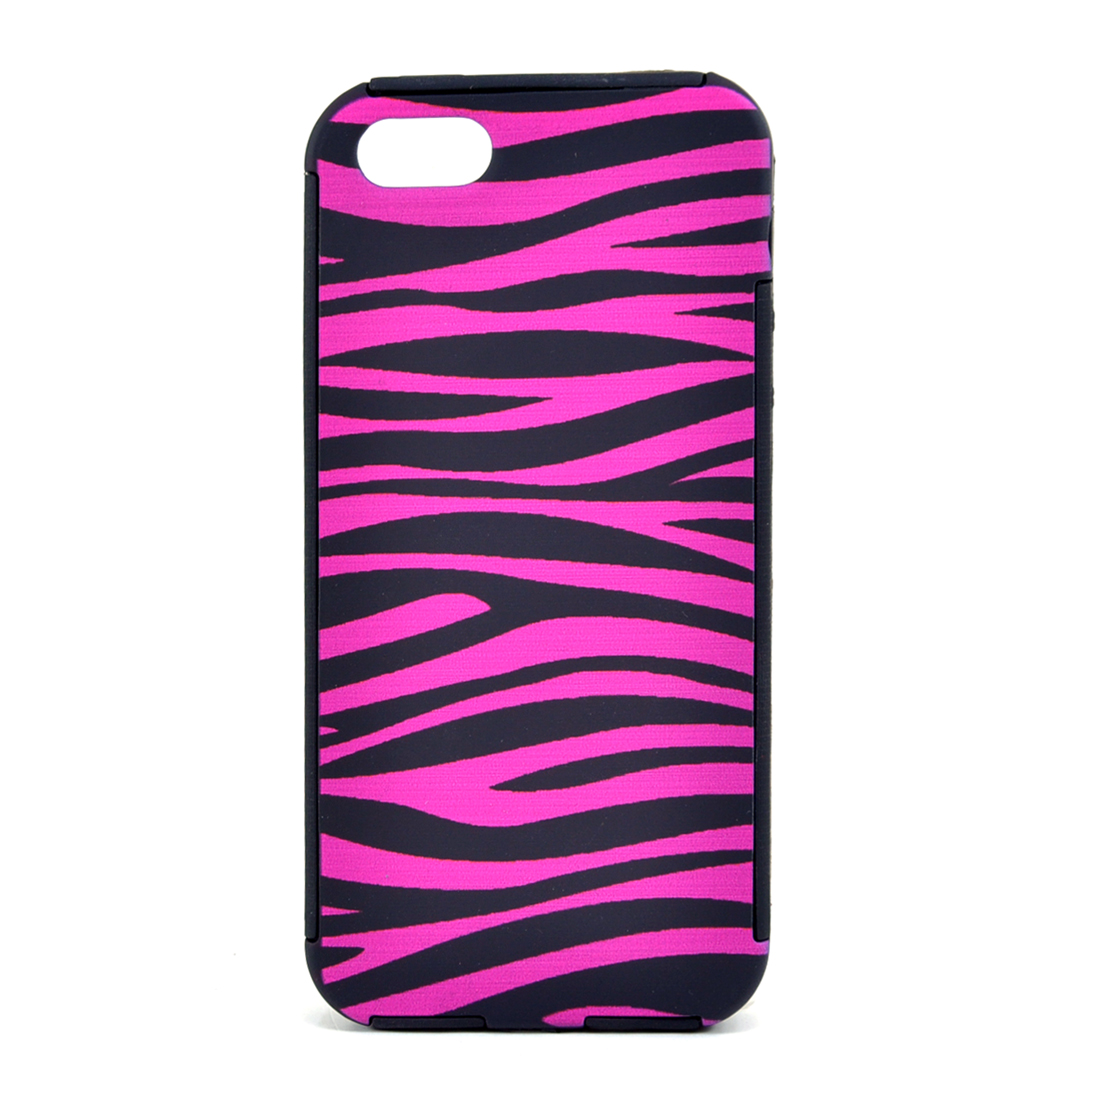 Dasein® Zebra Print iPhone 5 5s 5g Phone Case